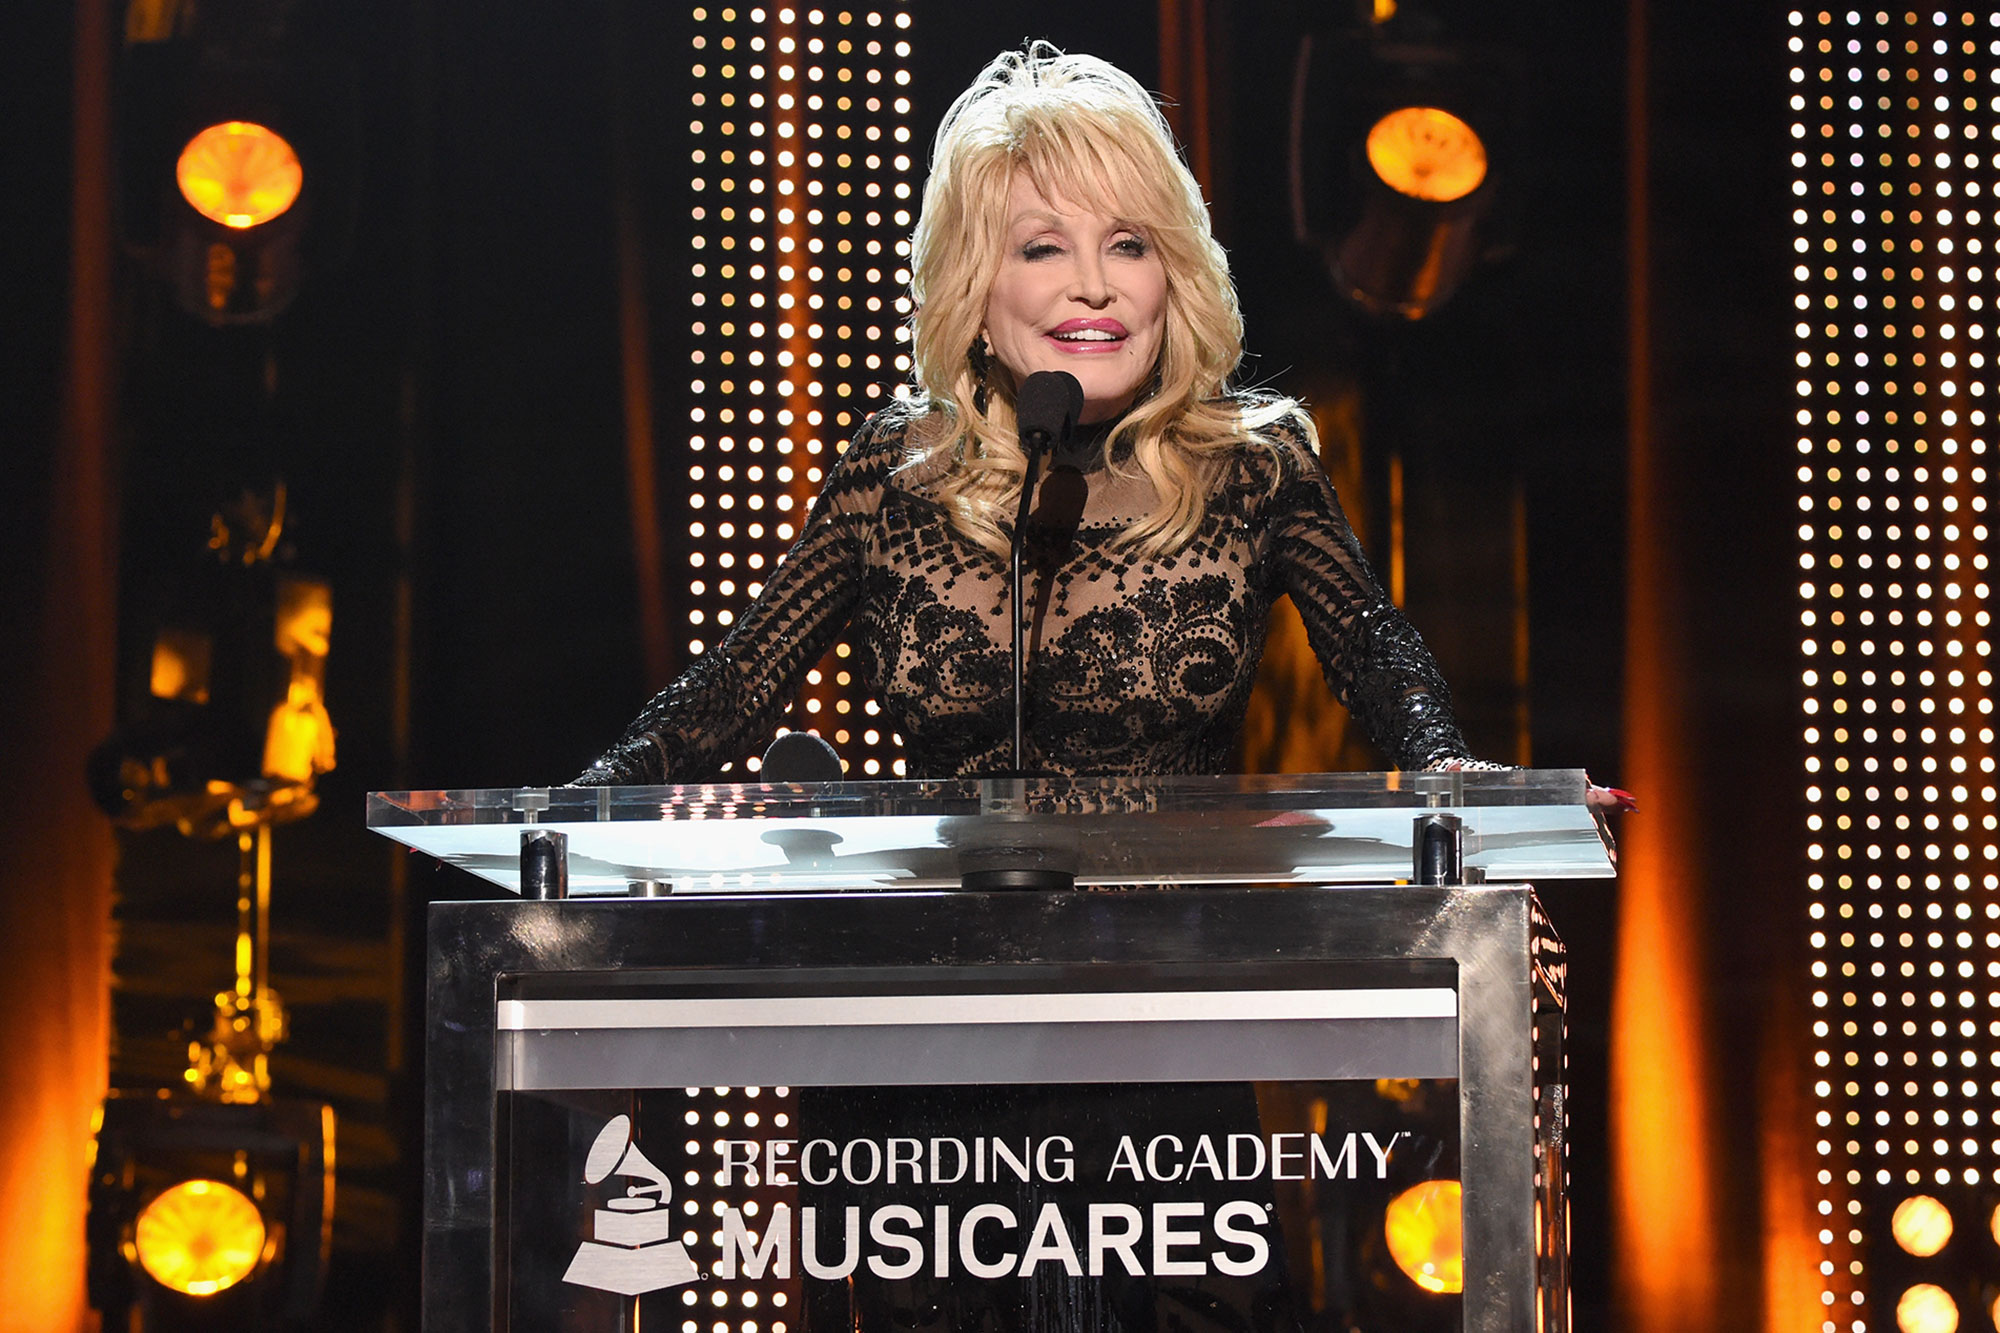 Katy Perry, Miley Cyrus, Garth Brooks, Willie Nelson, and more pay tribute to Dolly Parton at MusiCares 2019 Person of the Year